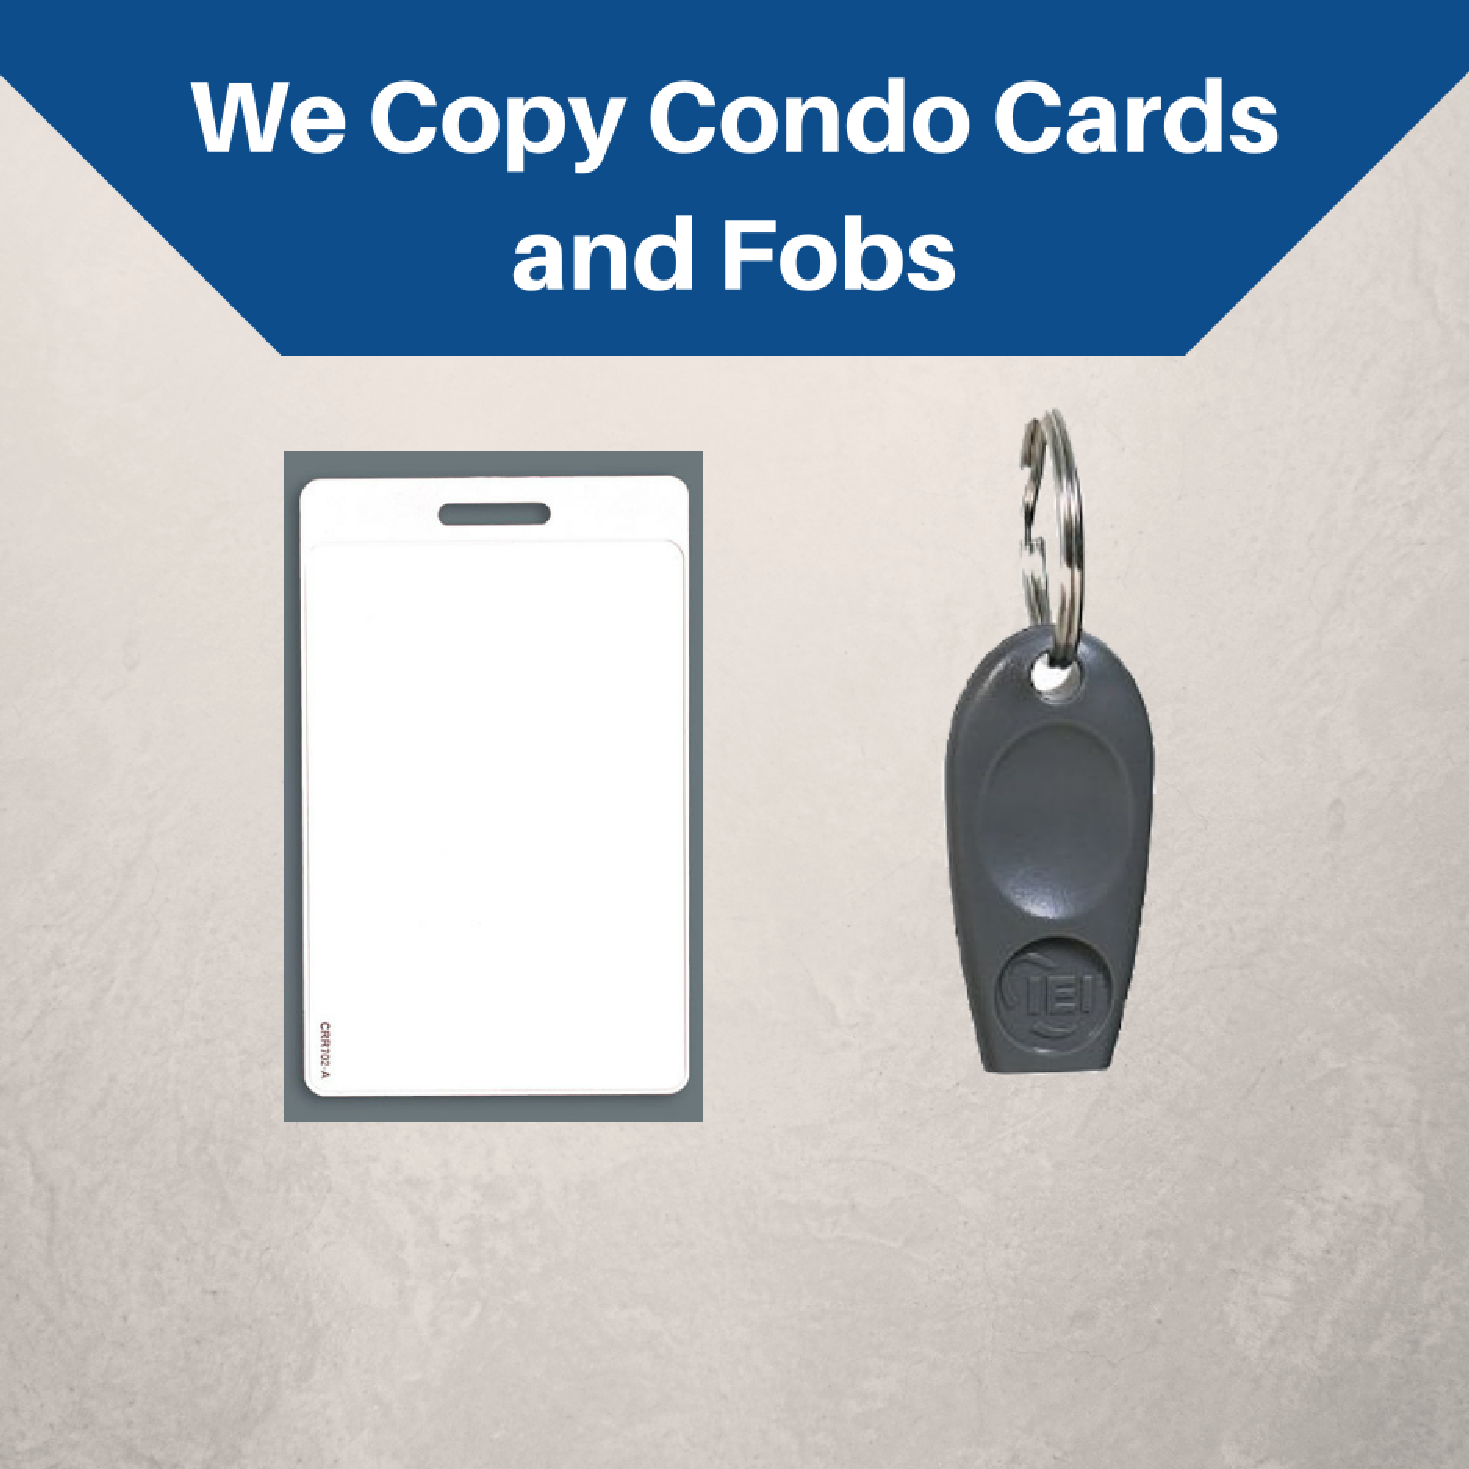 Duplicate condo cards and fobs in our store on Queen Street